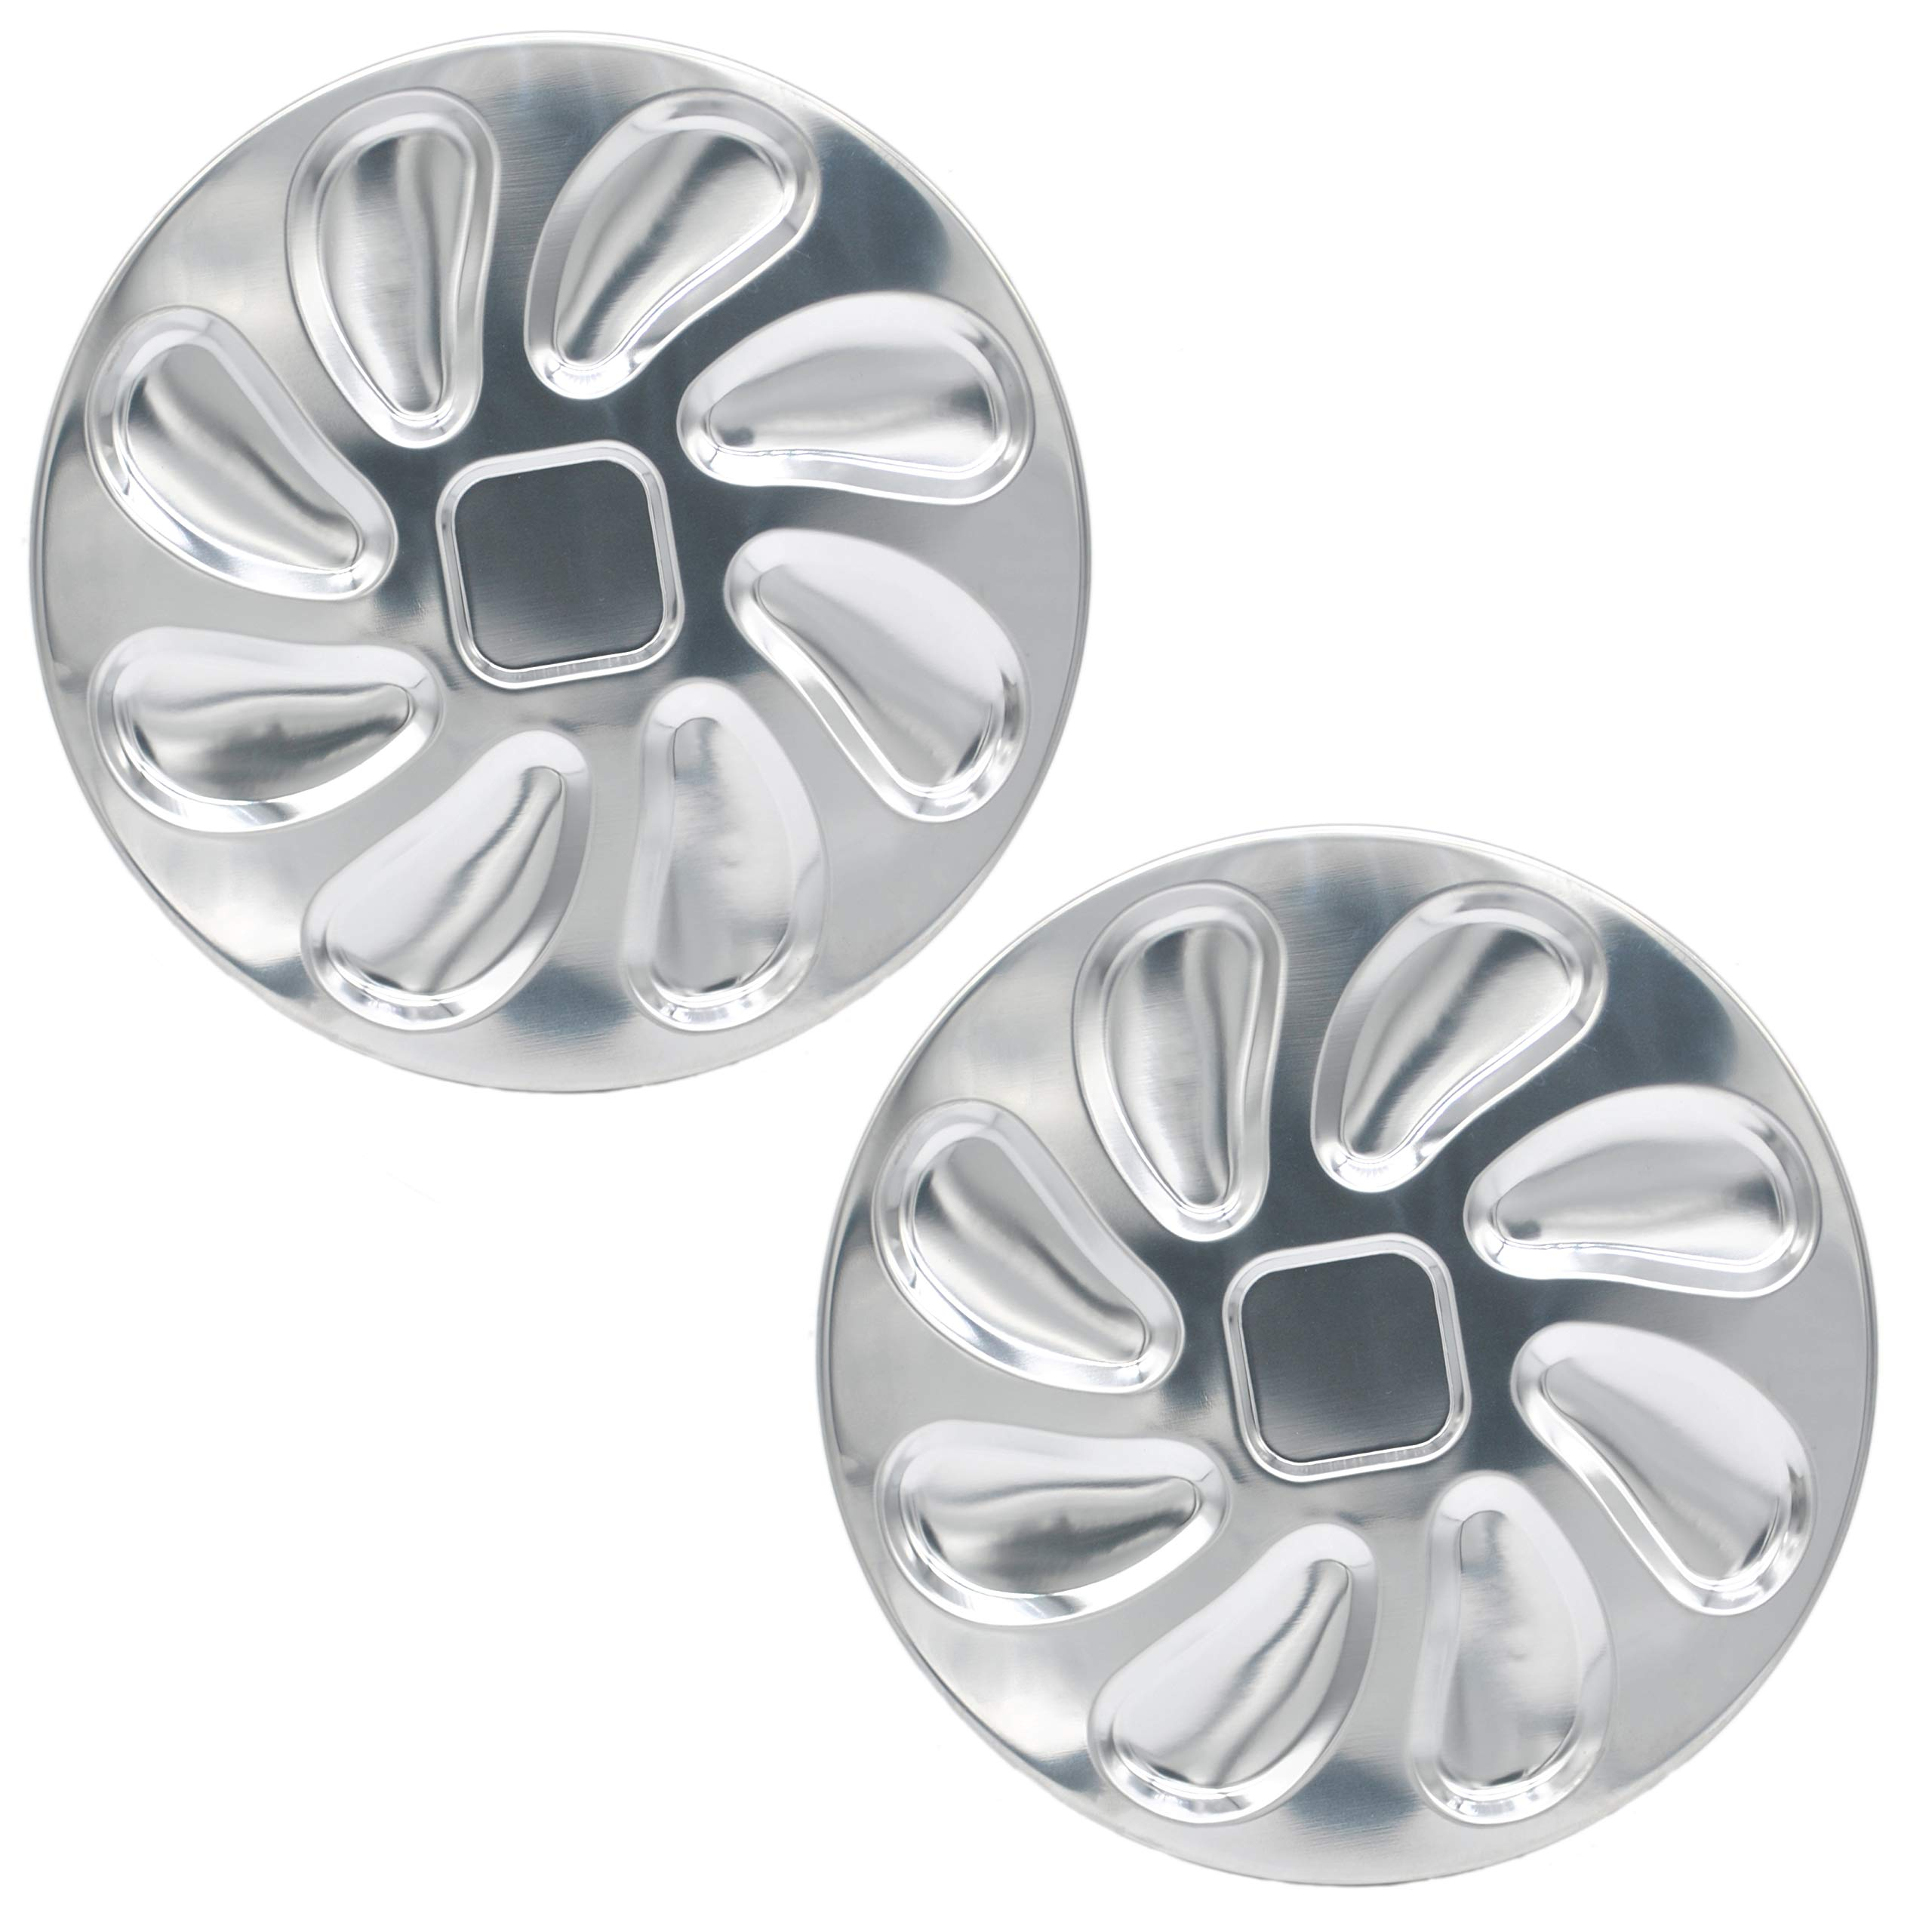 2 Pack Stainless Steel Oyster Plate for Oysters, Oyster Shell Shaped by MgTech